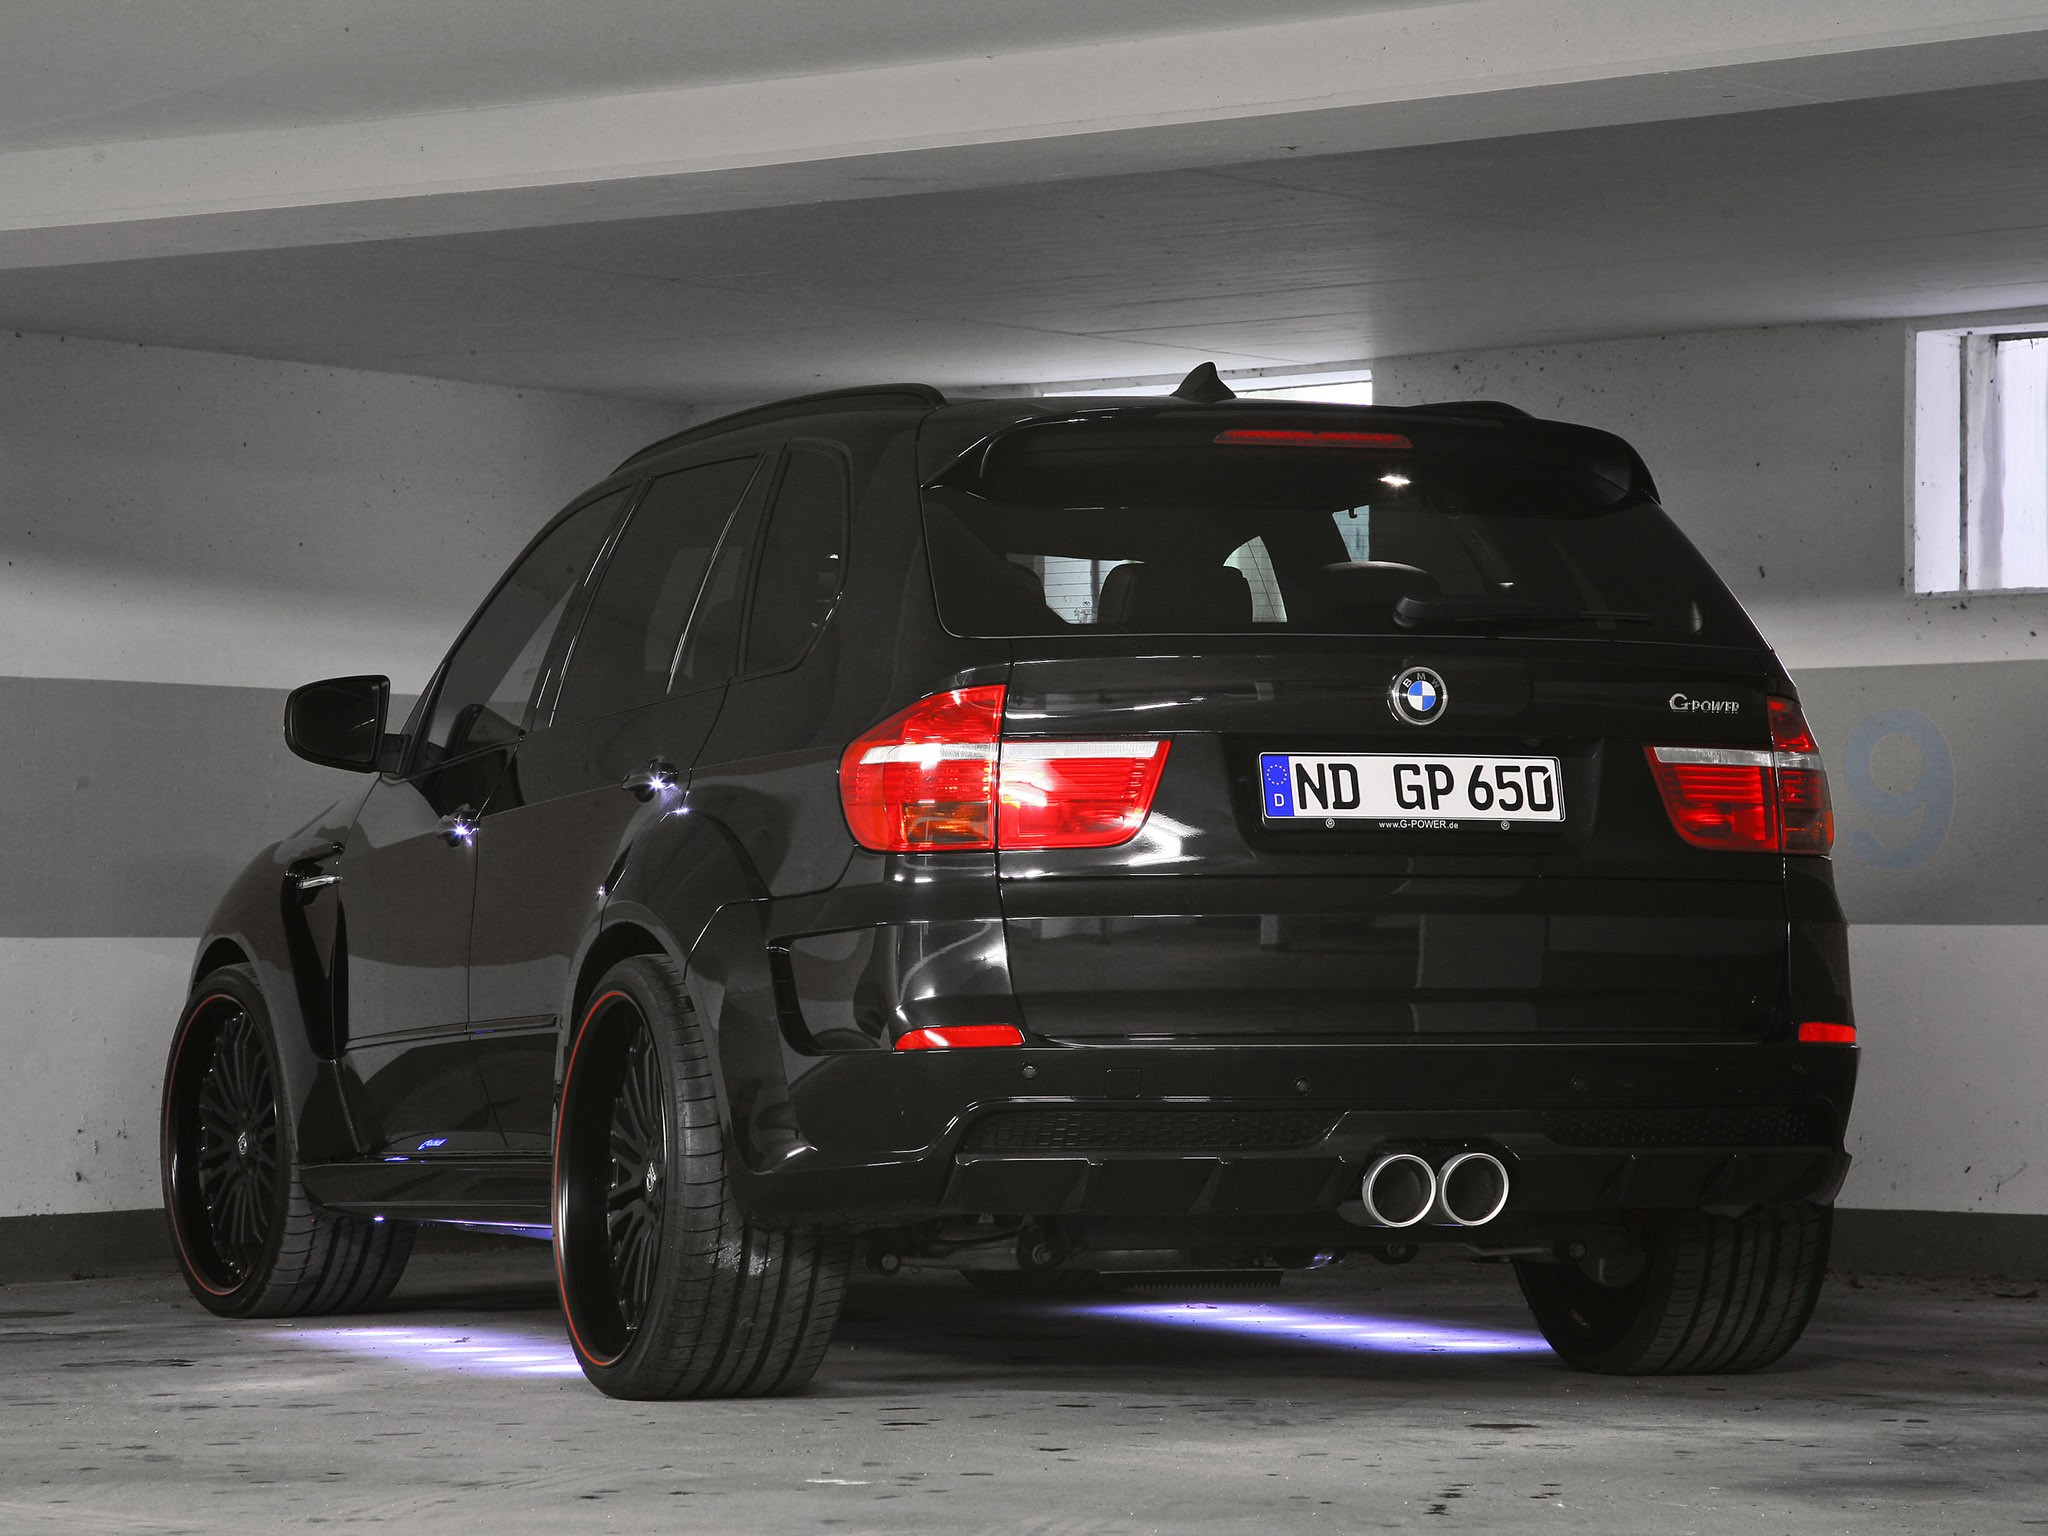 2010 G-power - Bmw X5 M Typhoon